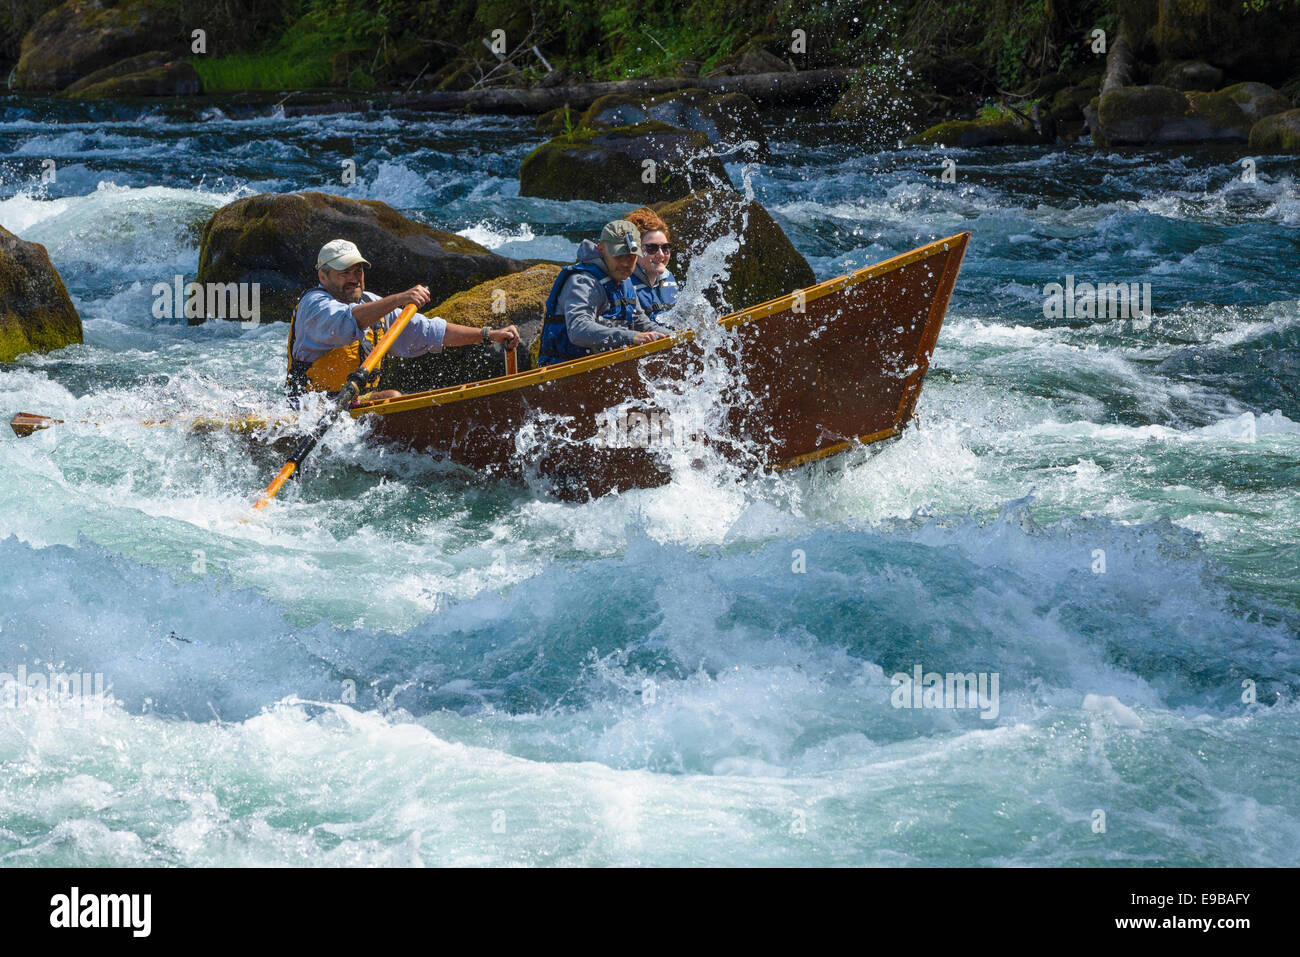 Guide Greg Hatten takes guests on his wooden drift boat through Marten Rapids on the McKenzie River, Oregon. Stock Photo